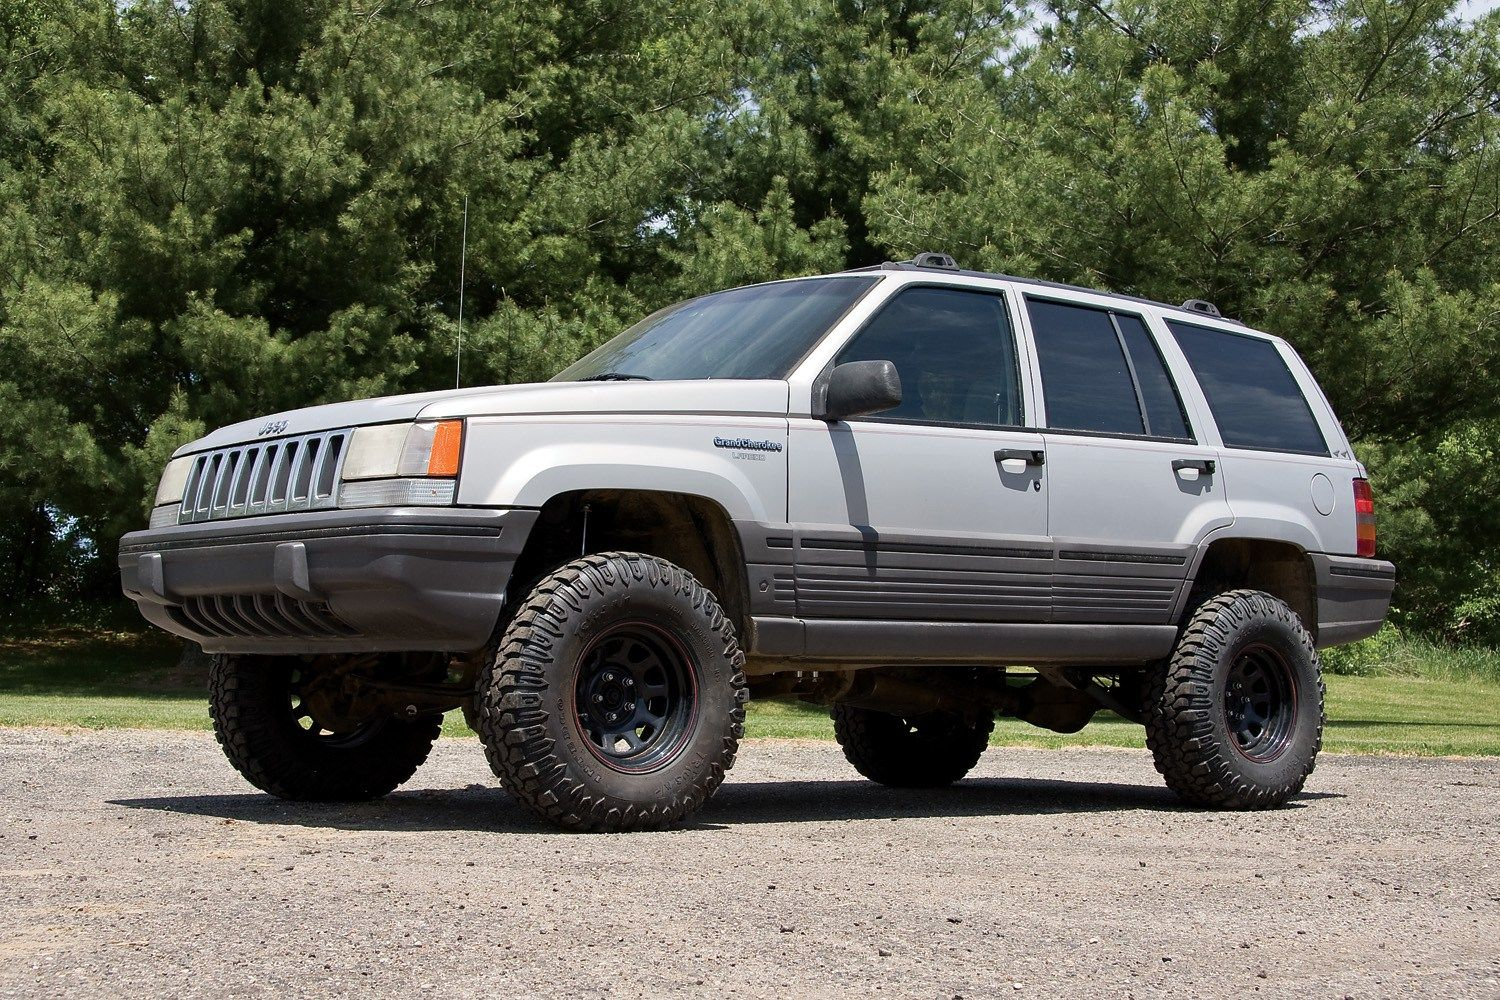 1996 Jeep Grand Cherokee Laredo Lifted